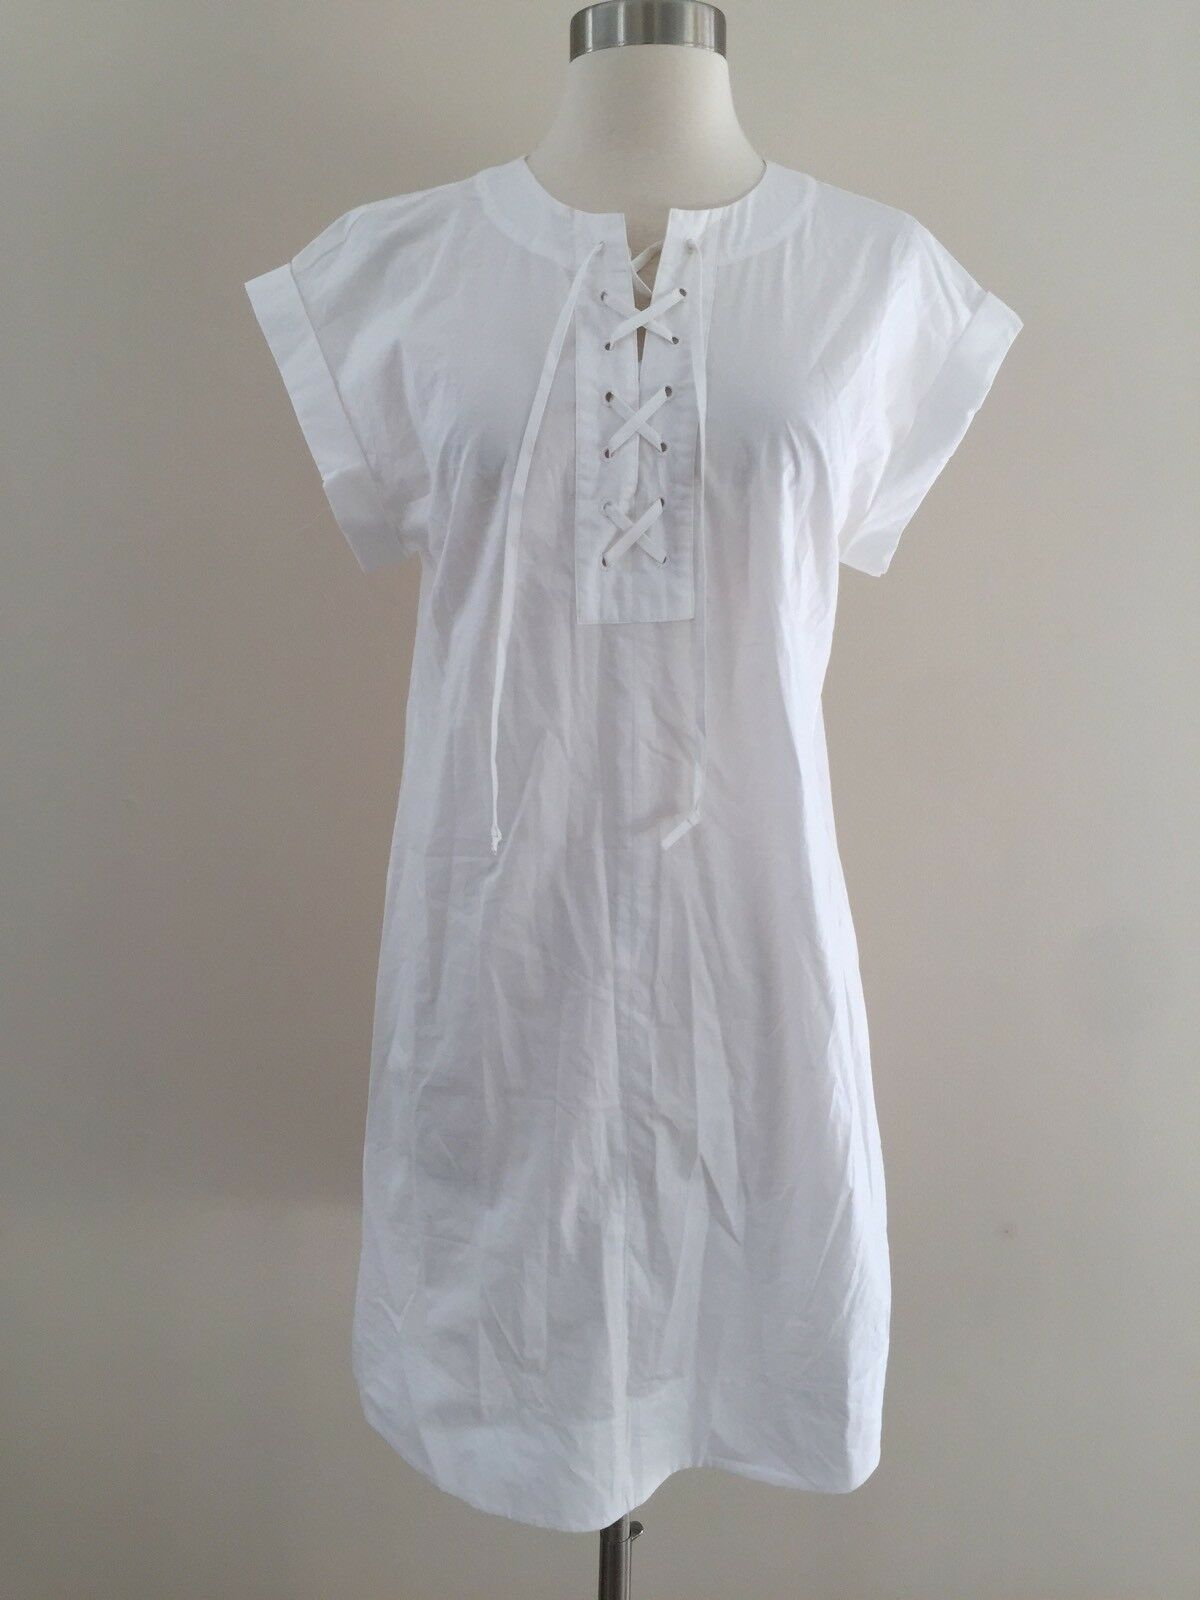 NEW Jcrew Lace Up Cotton Shirt Dress Weiß G5359 SUMMER 2017 S SOLD-OUT